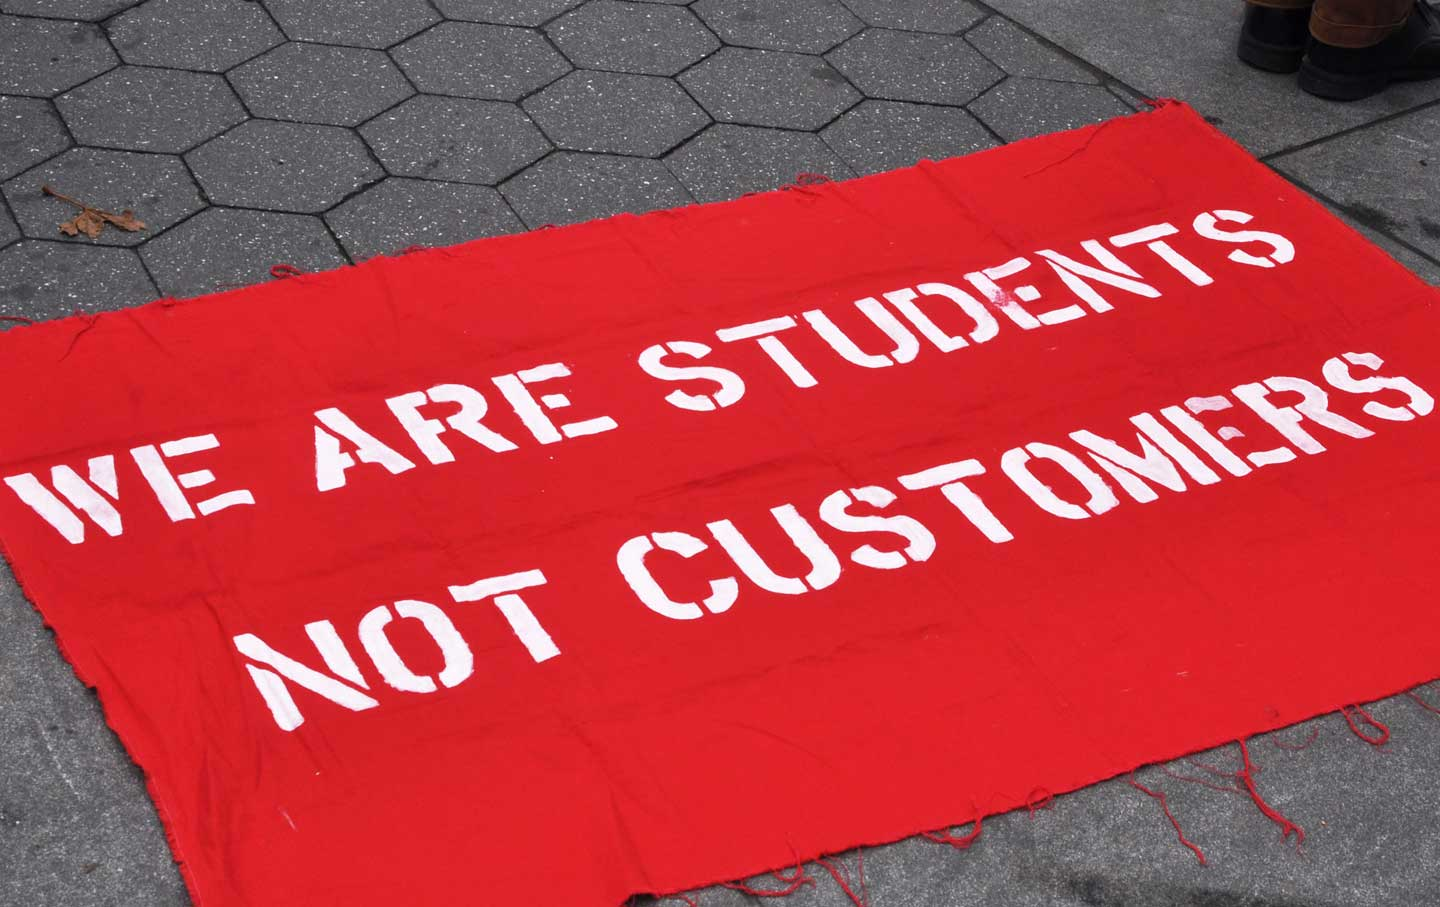 Student Debt Customers